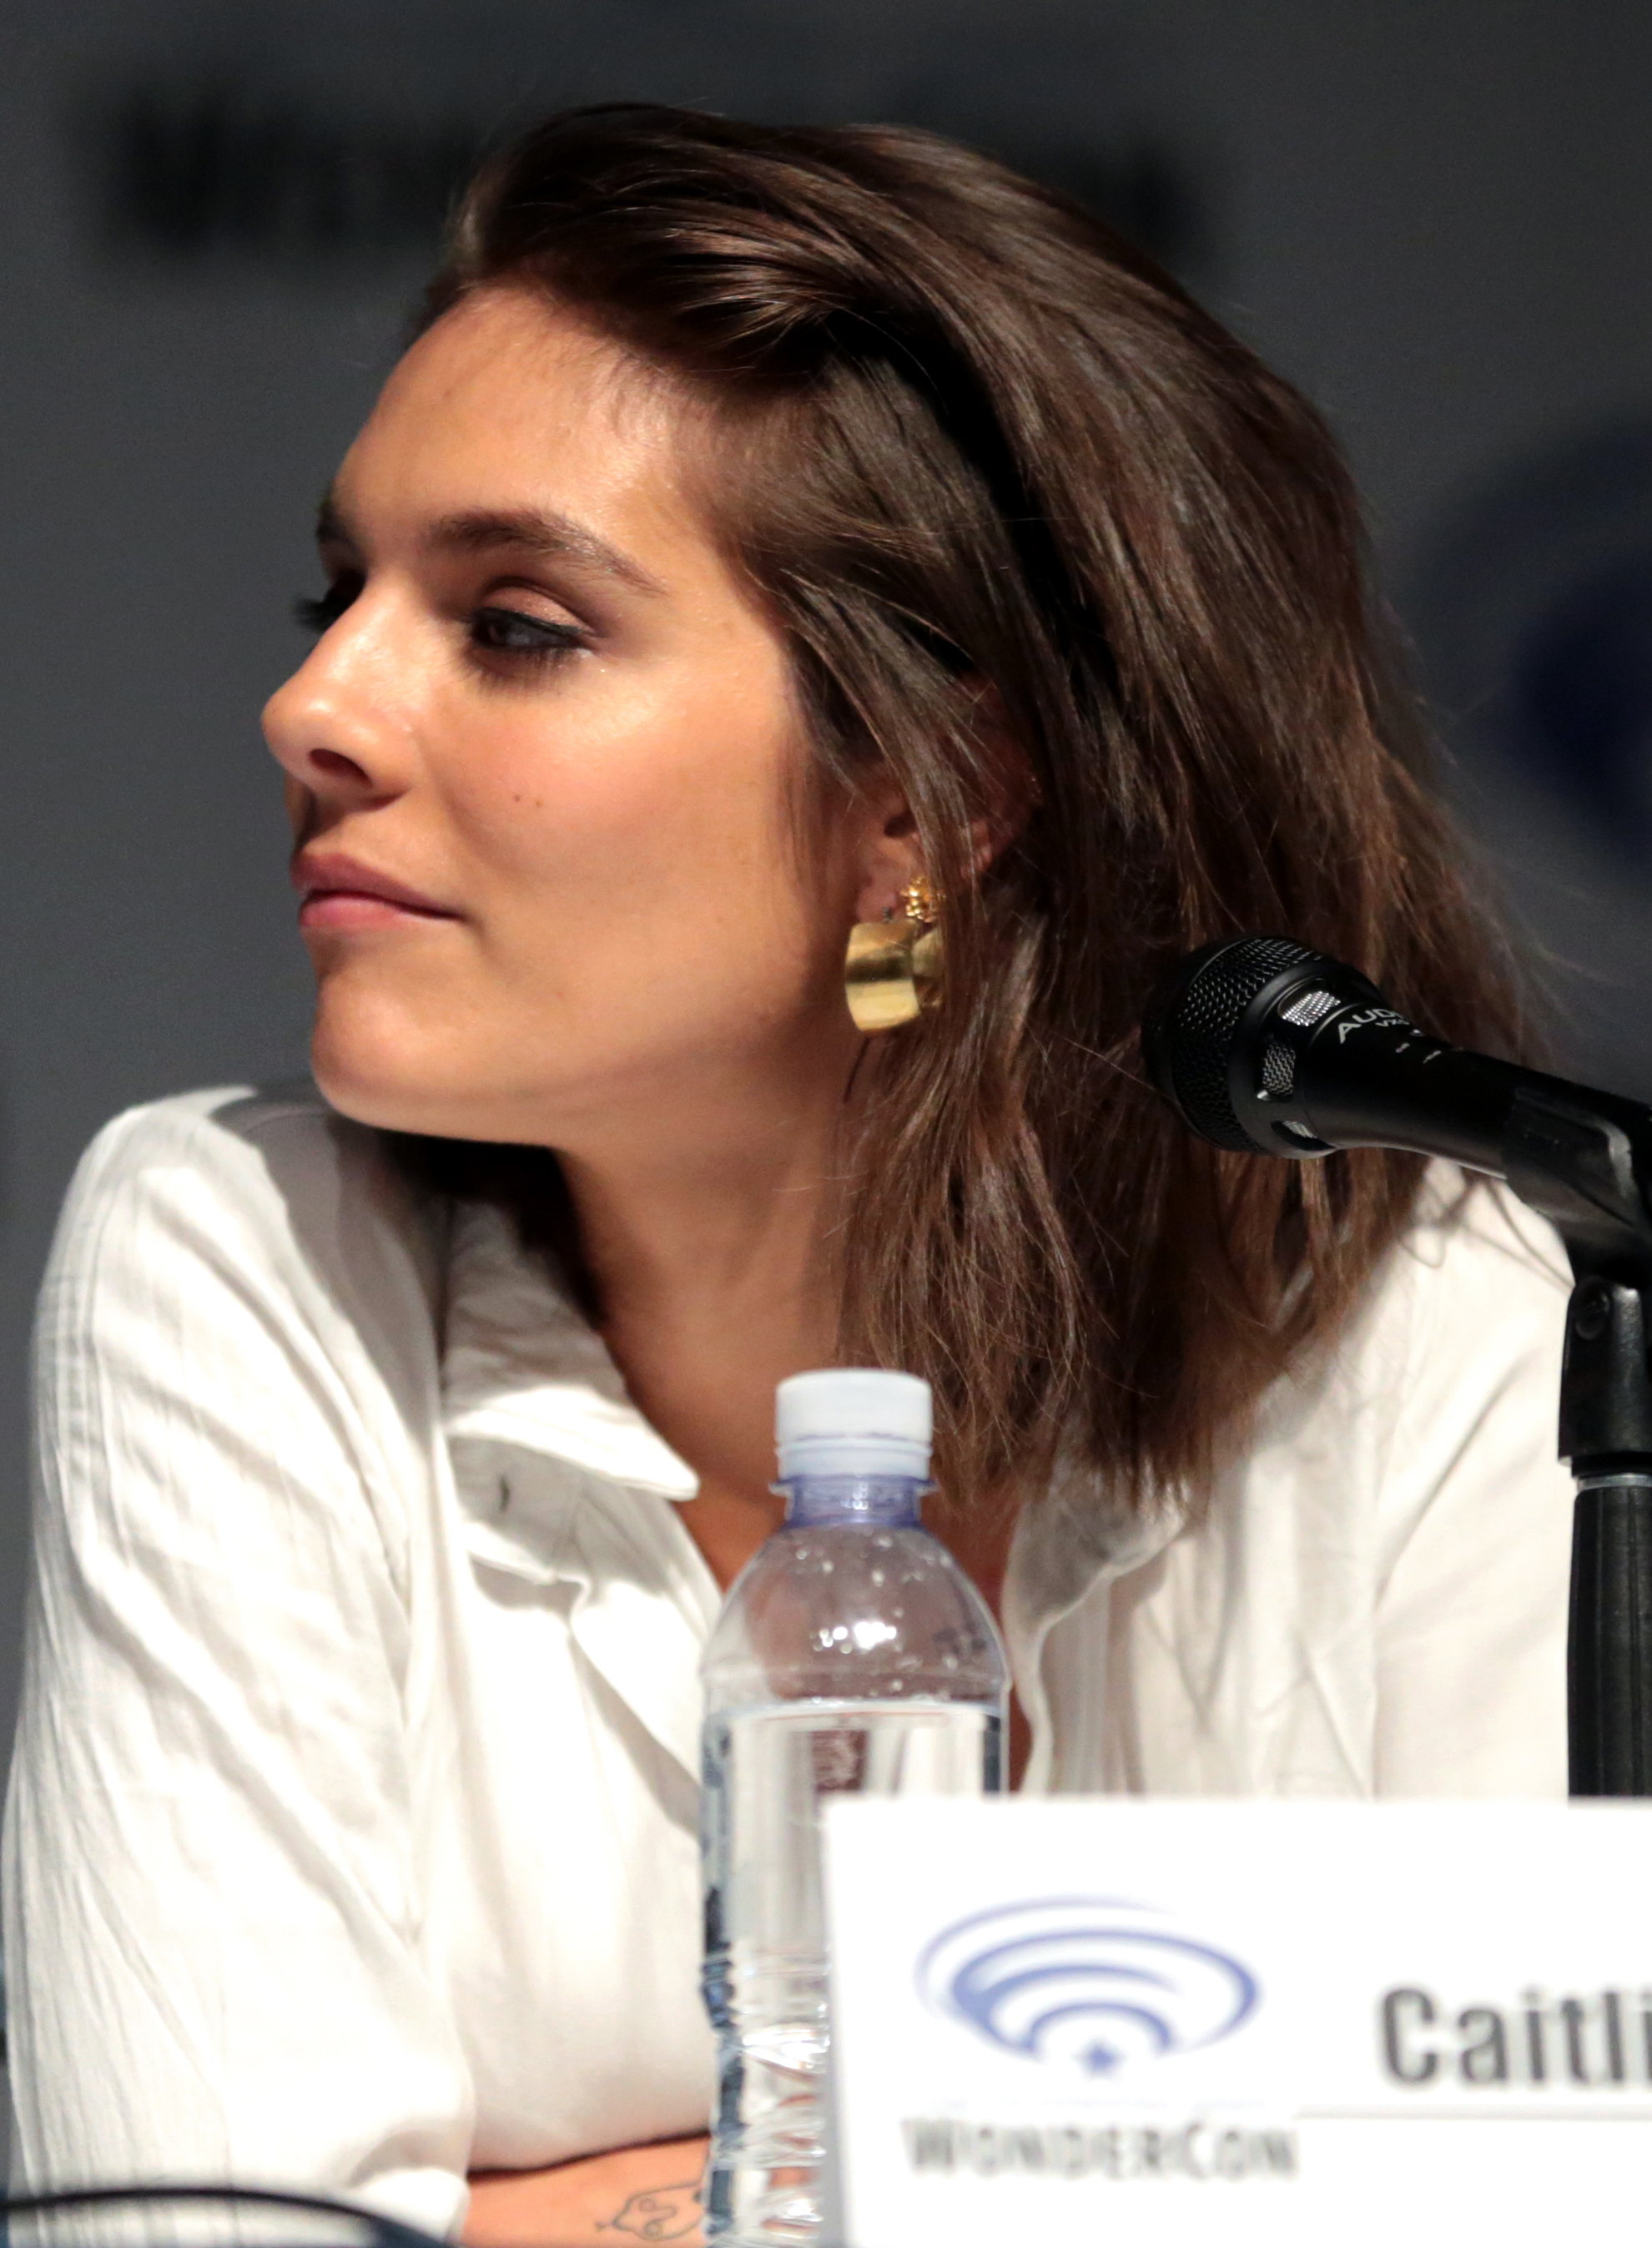 The 28-year old daughter of father David Stasey and mother Sally Stasey Caitlin Stasey in 2018 photo. Caitlin Stasey earned a  million dollar salary - leaving the net worth at 2 million in 2018